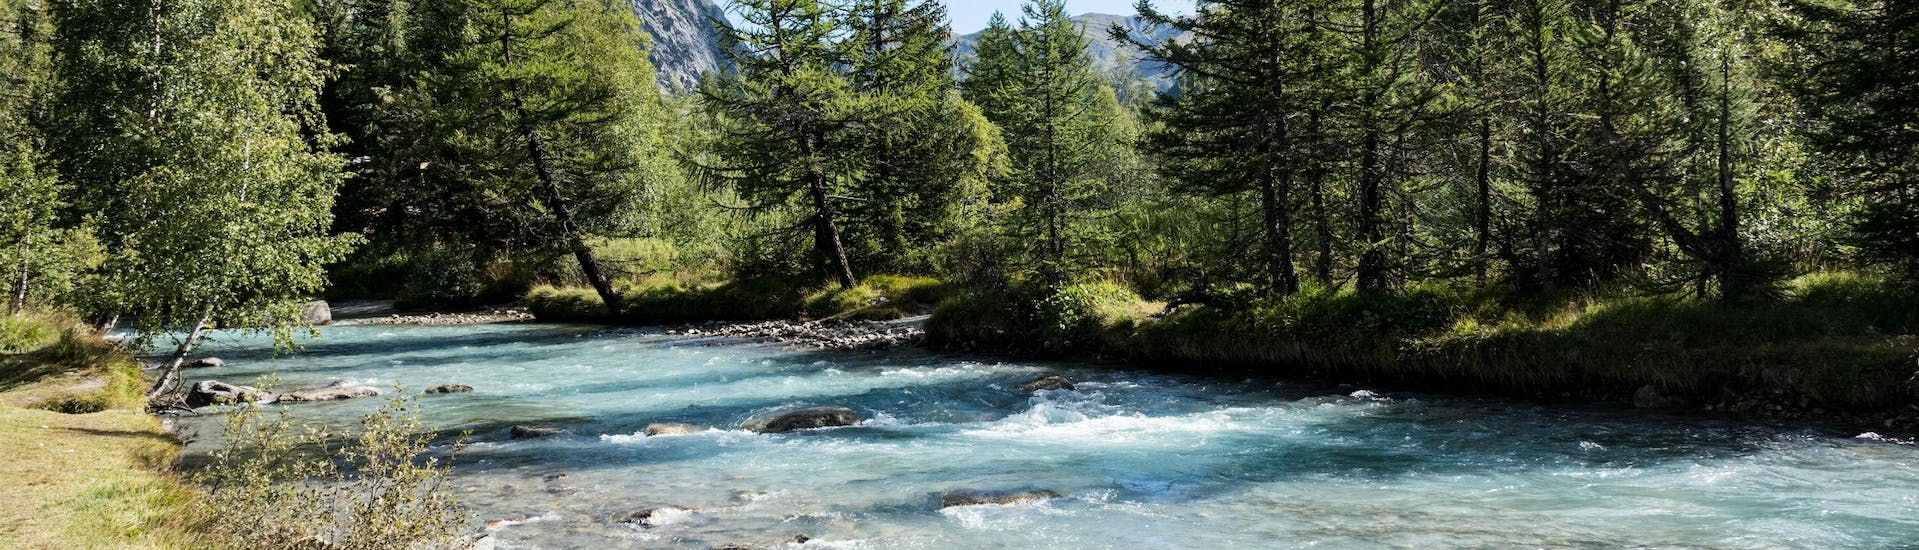 An image of a river flowing through the picturesque mountain scenery that people who go rafting in Aosta Valley get to experience.